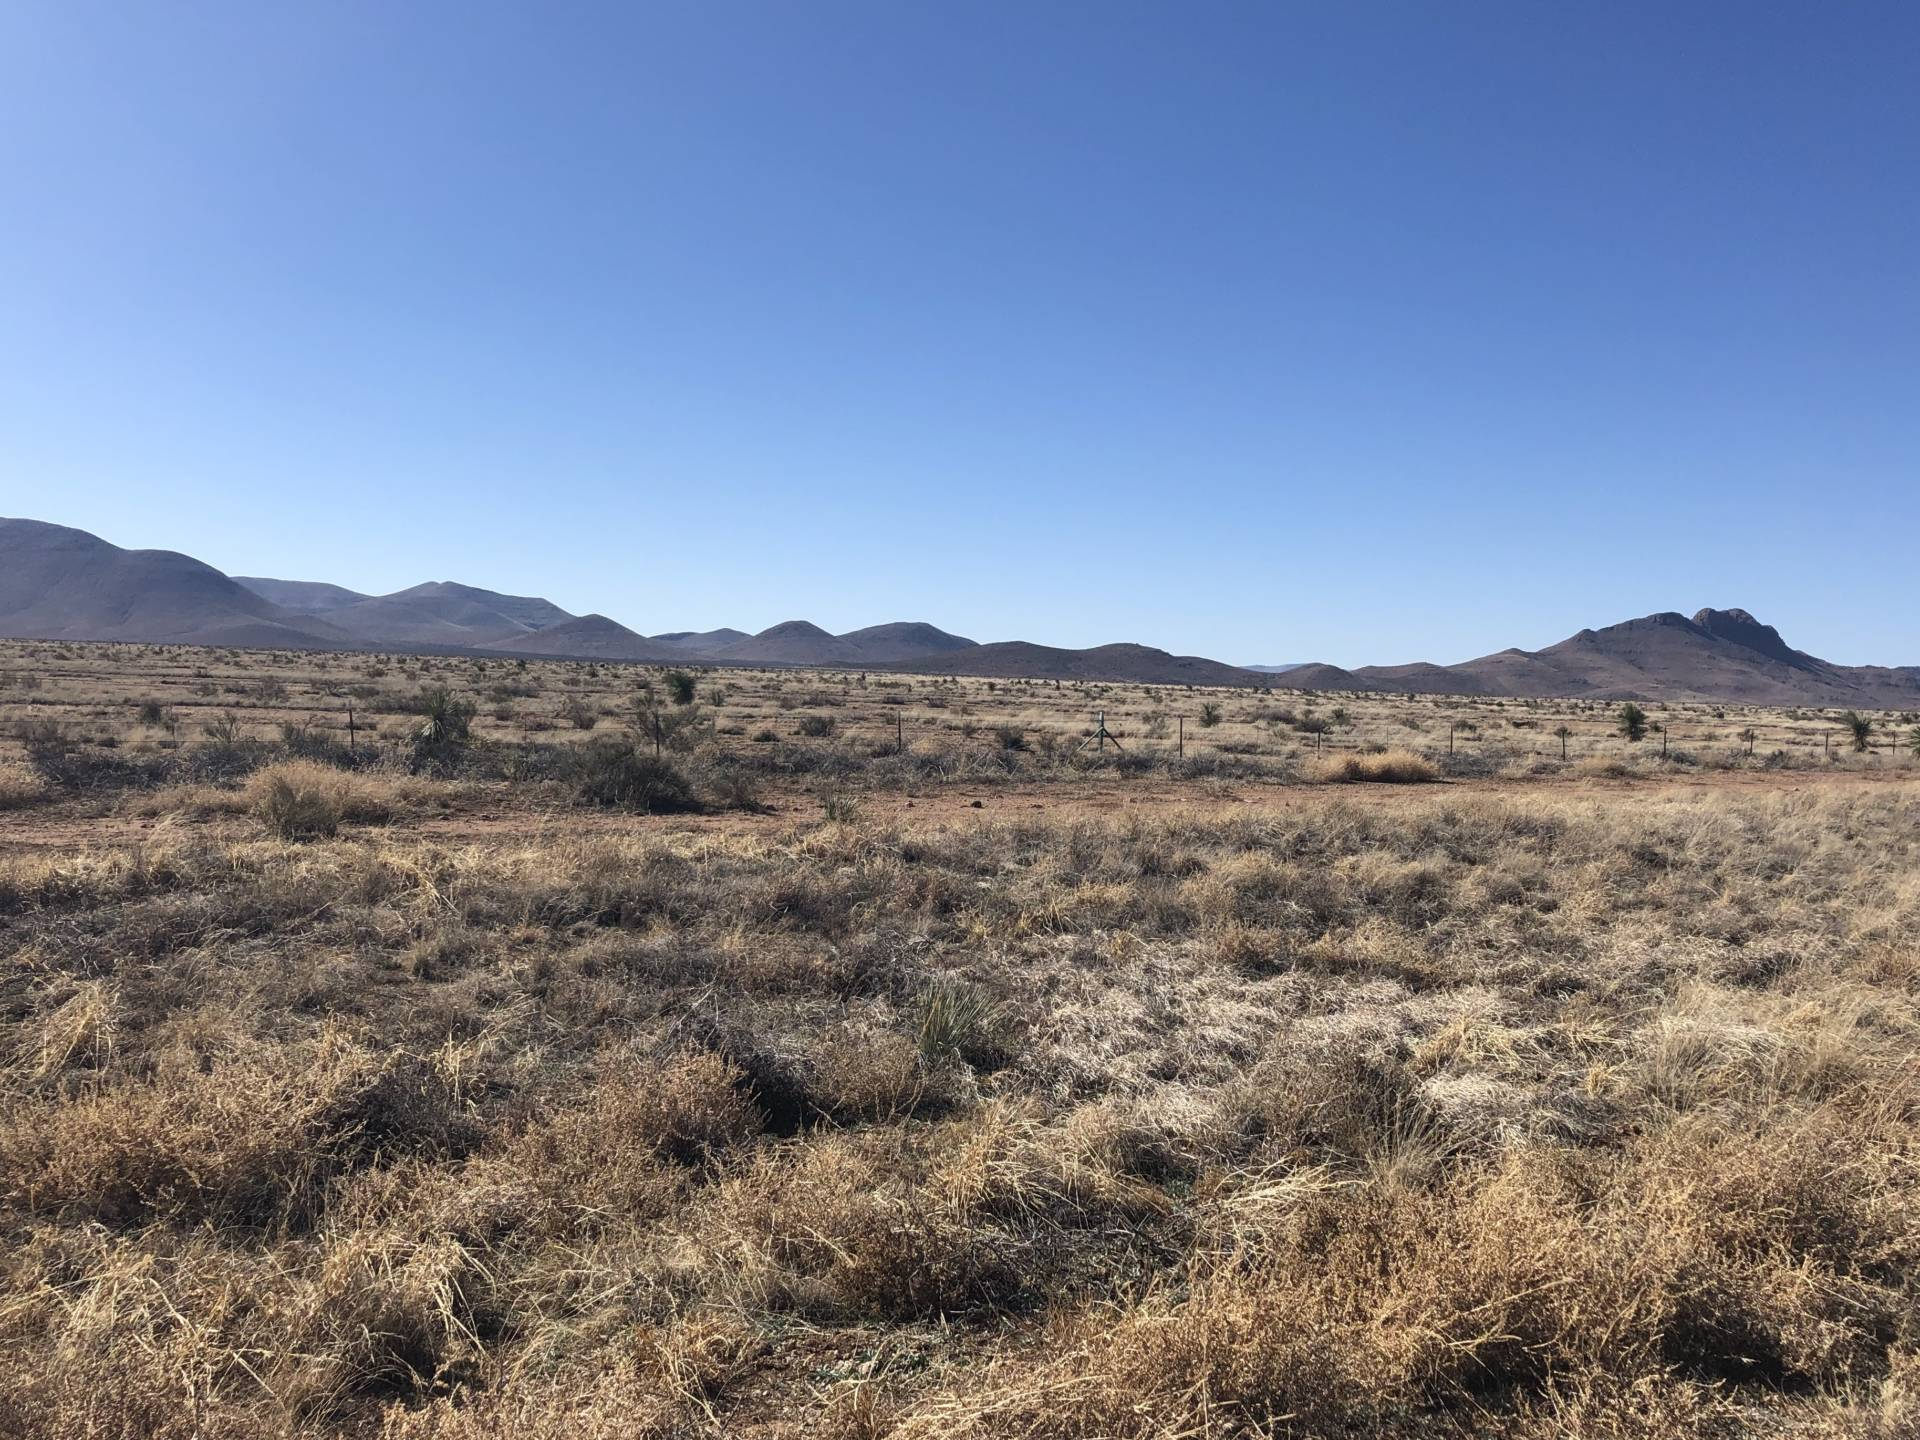 New Mexico's Bootheel region along the U.S.-Mexico border is an important wildlife corridor. There is currently no border wall in this area but environmentalists are concerned about what could happen if the wall is expanded. Mallory Falk/KRWG